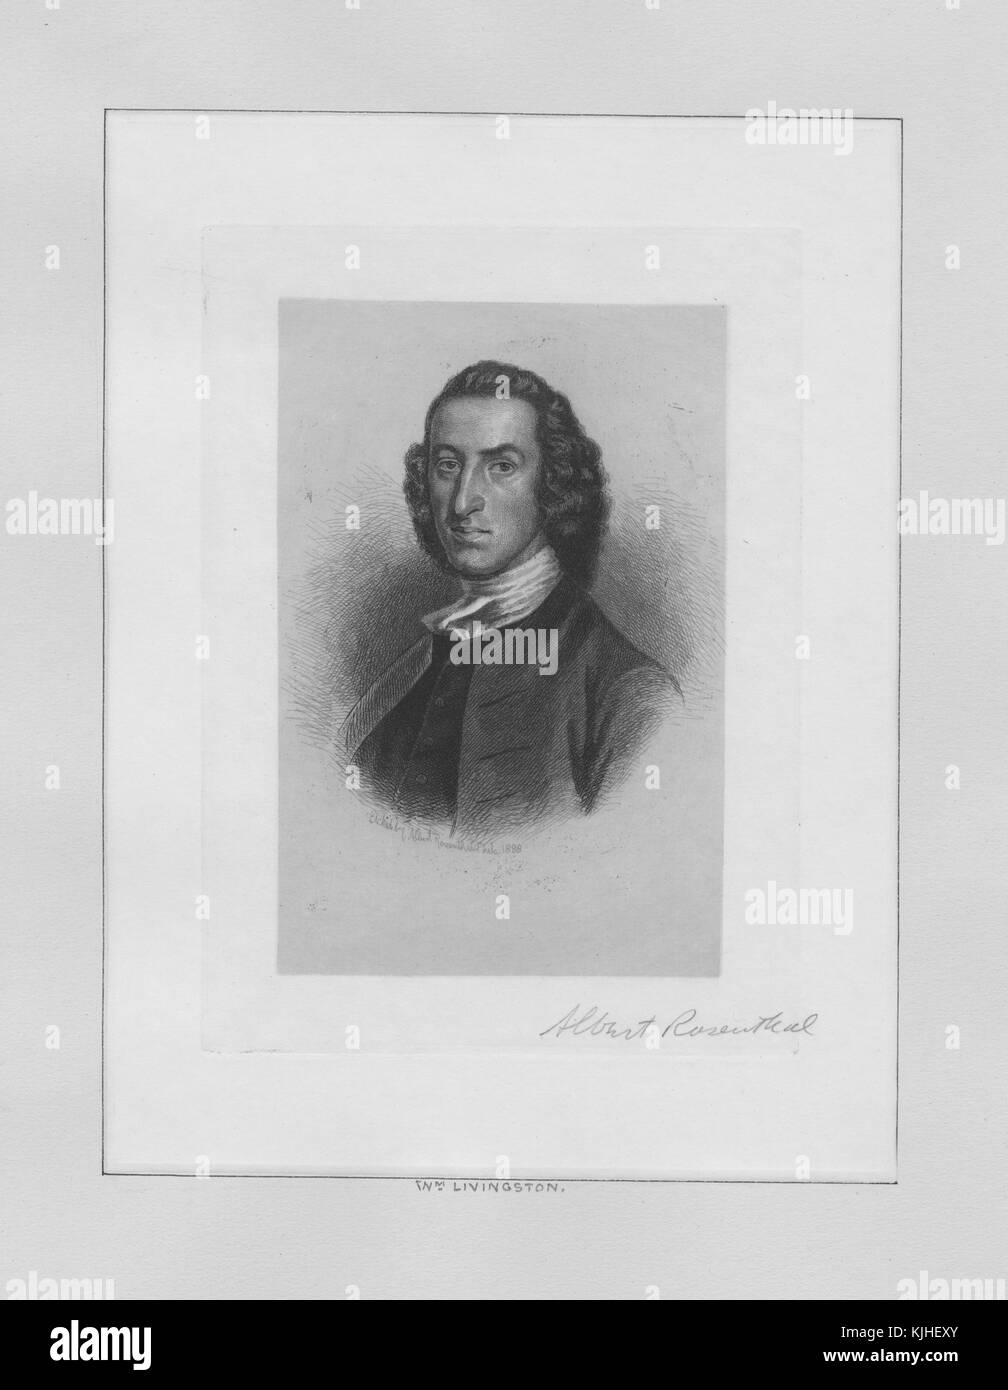 An engraving from a portrait of William Livingston, he was the 1st Governor of New Jersey and served in that office - Stock Image